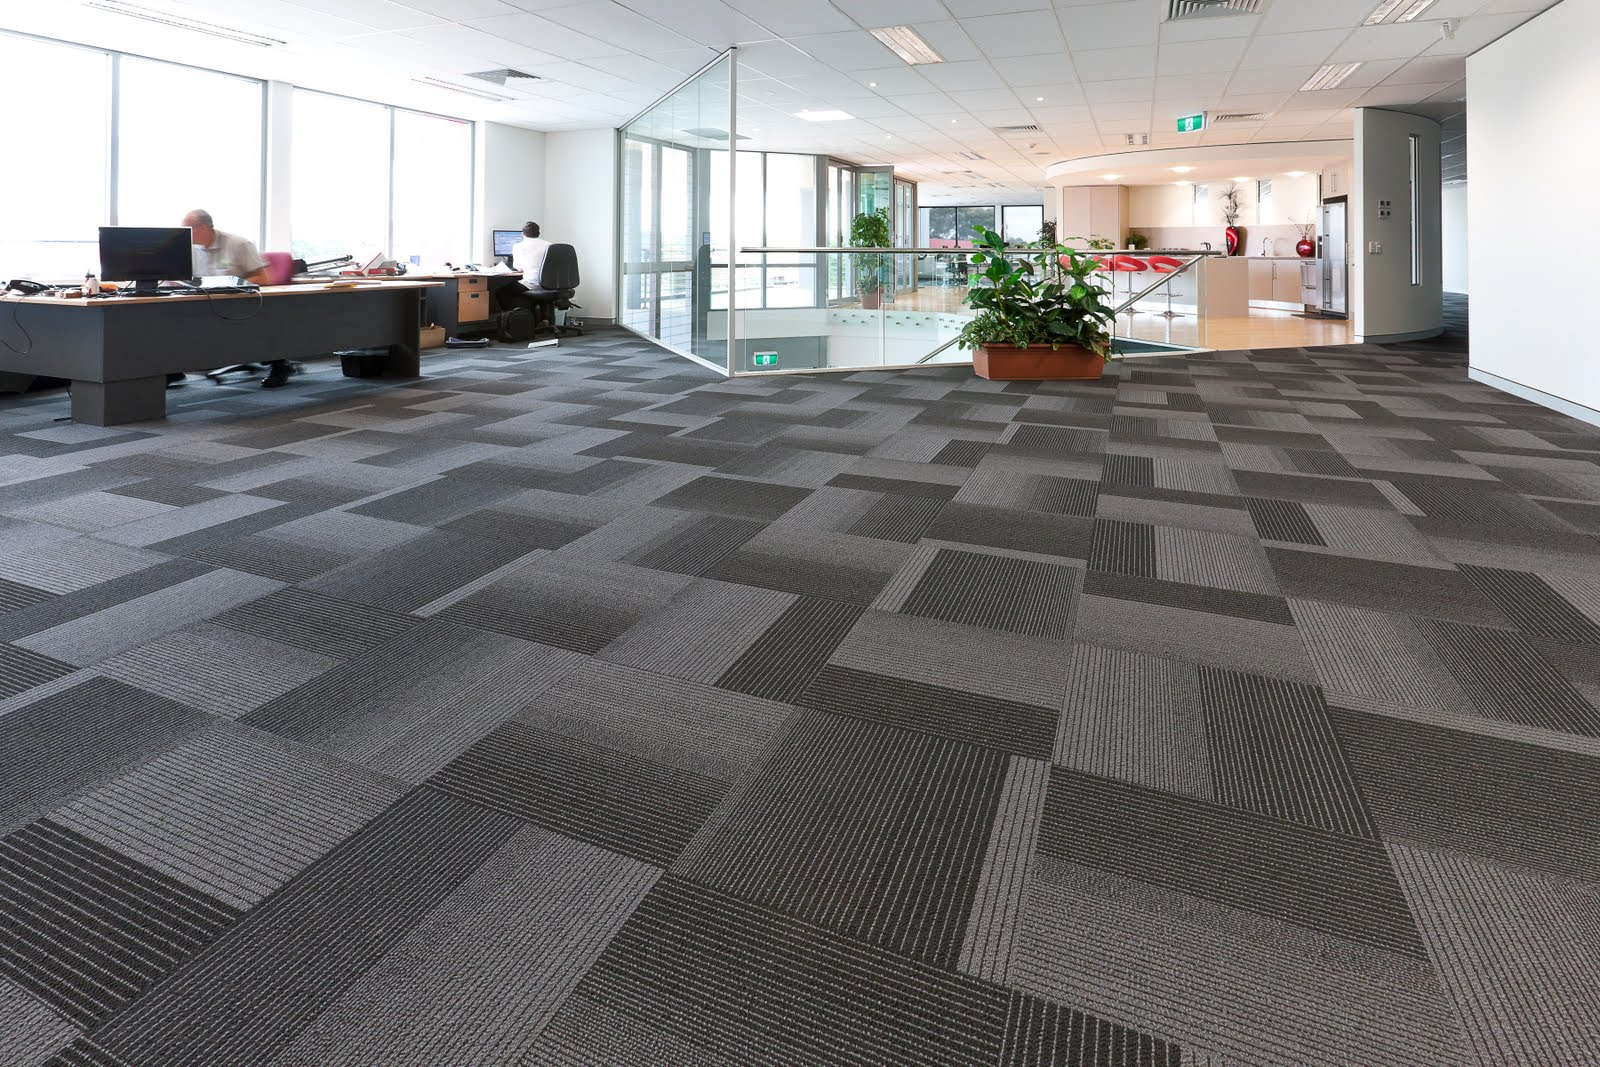 Home Office Vinyl Flooring Tiles In Dubai: Vinyl Carpet Tiles, Vinyl Tile Installation, Vinyl